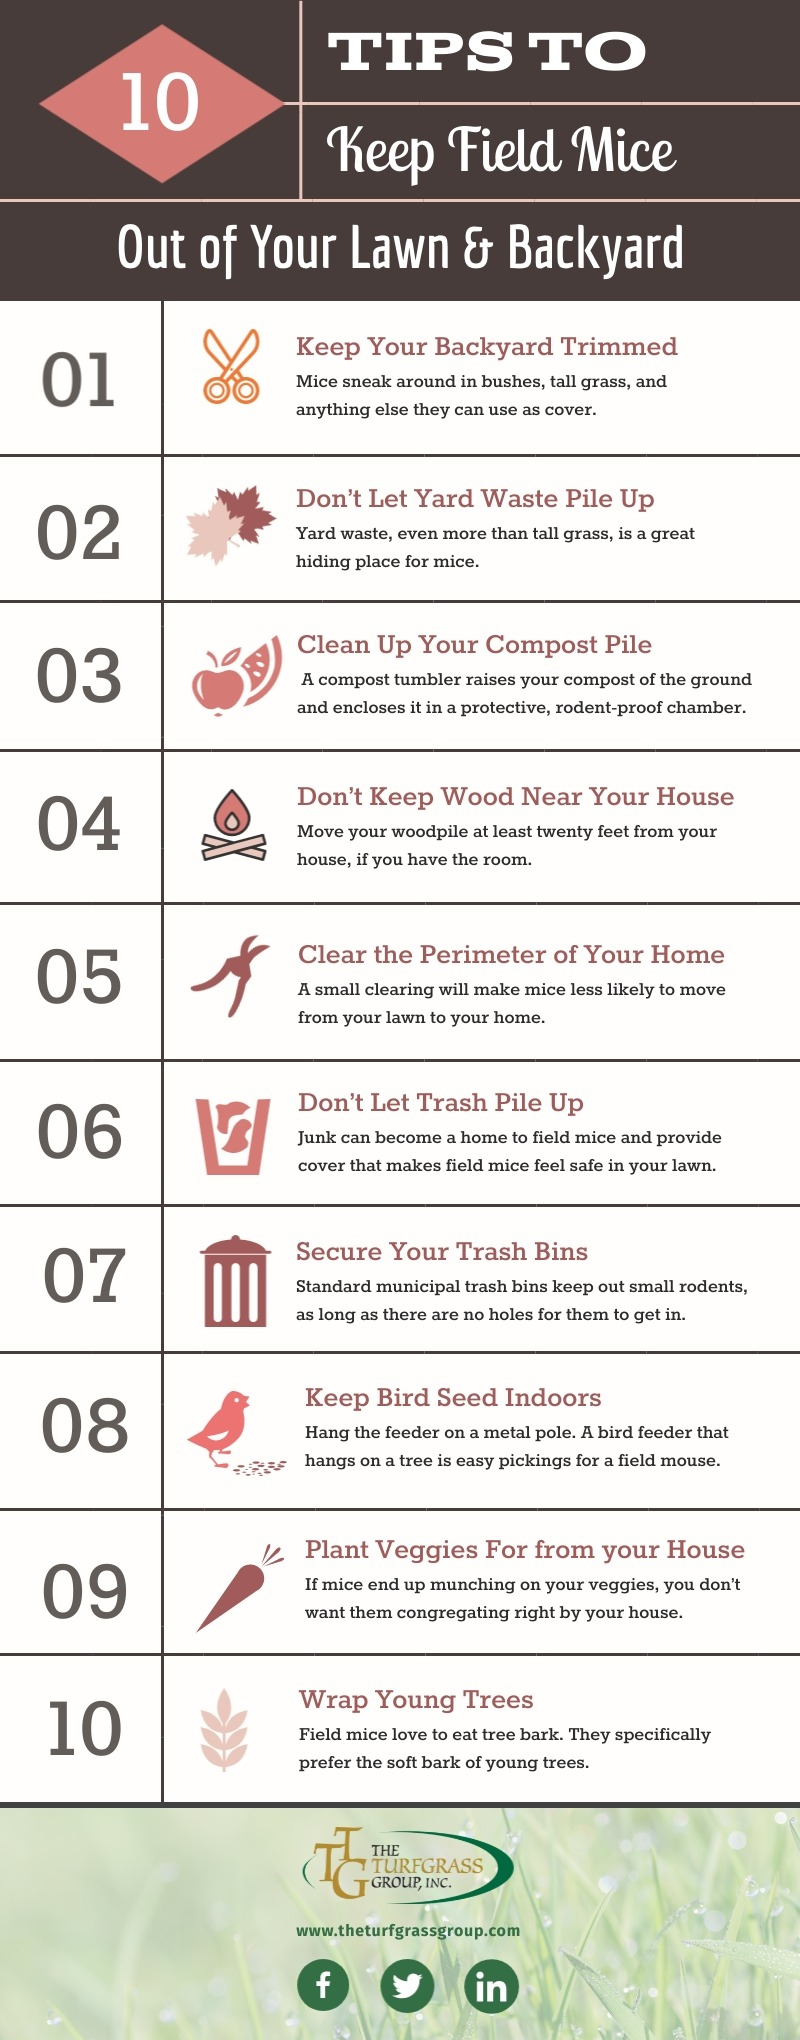 How to Keep Field Mice Out of Your Lawn [infographic]